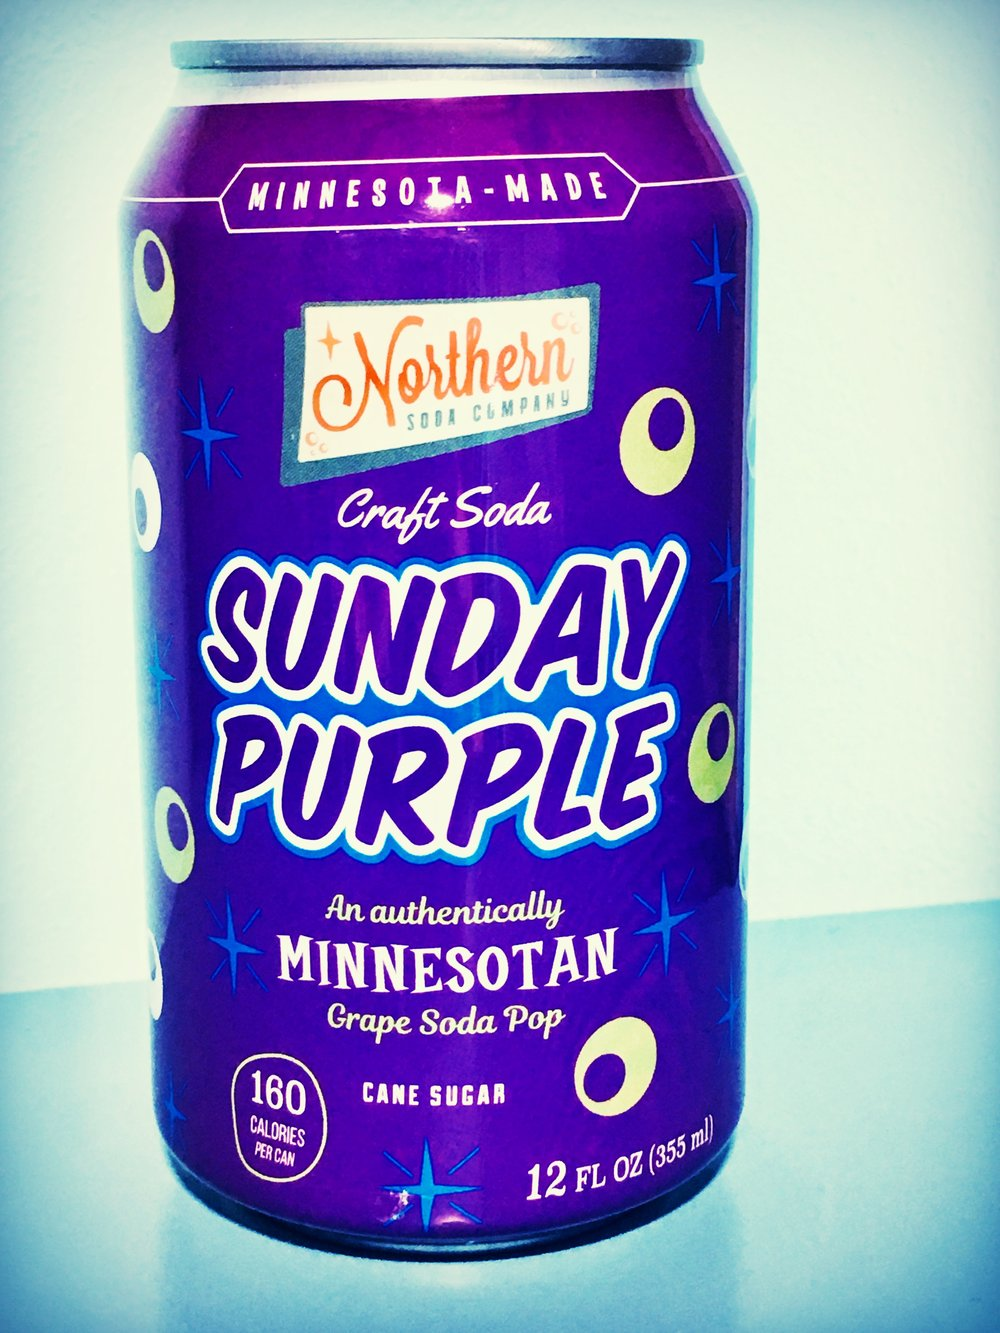 The perfect tailgate companion, our unique grape soda helps make sunday gatherings across Minnesota and beyond even more special.